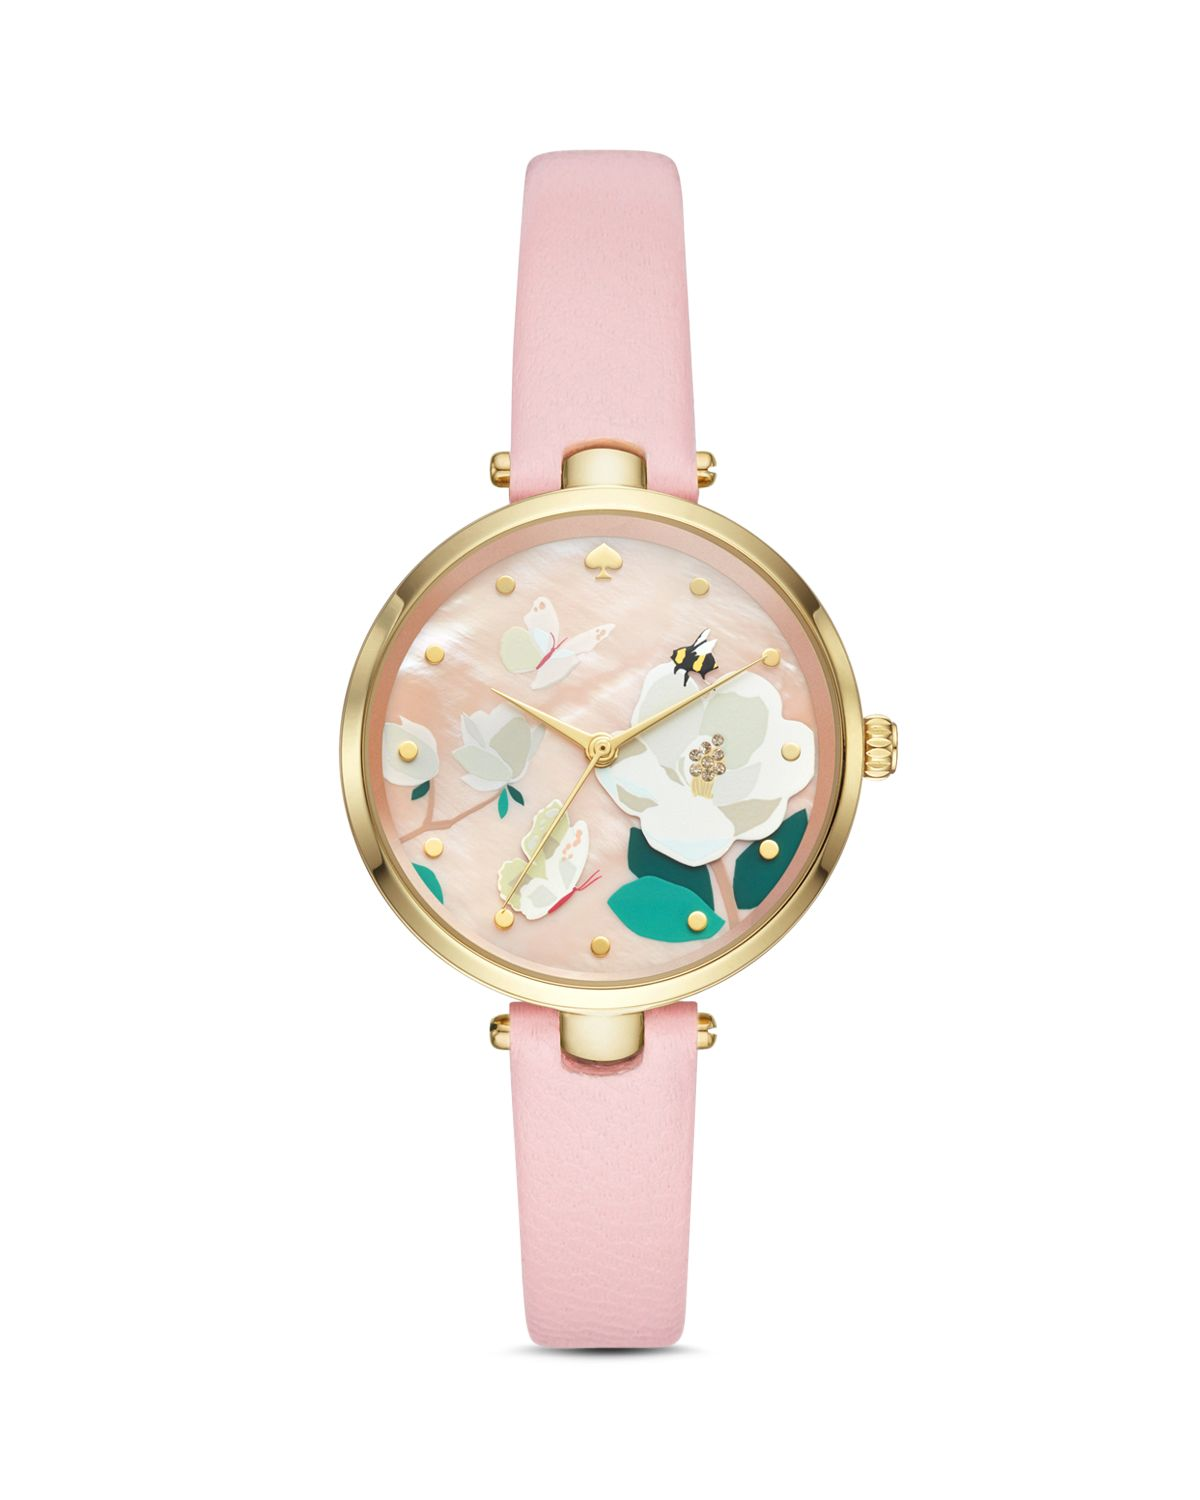 Holland Bee, Butterfly & Floral Detail Watch, 34mm by Kate Spade New York